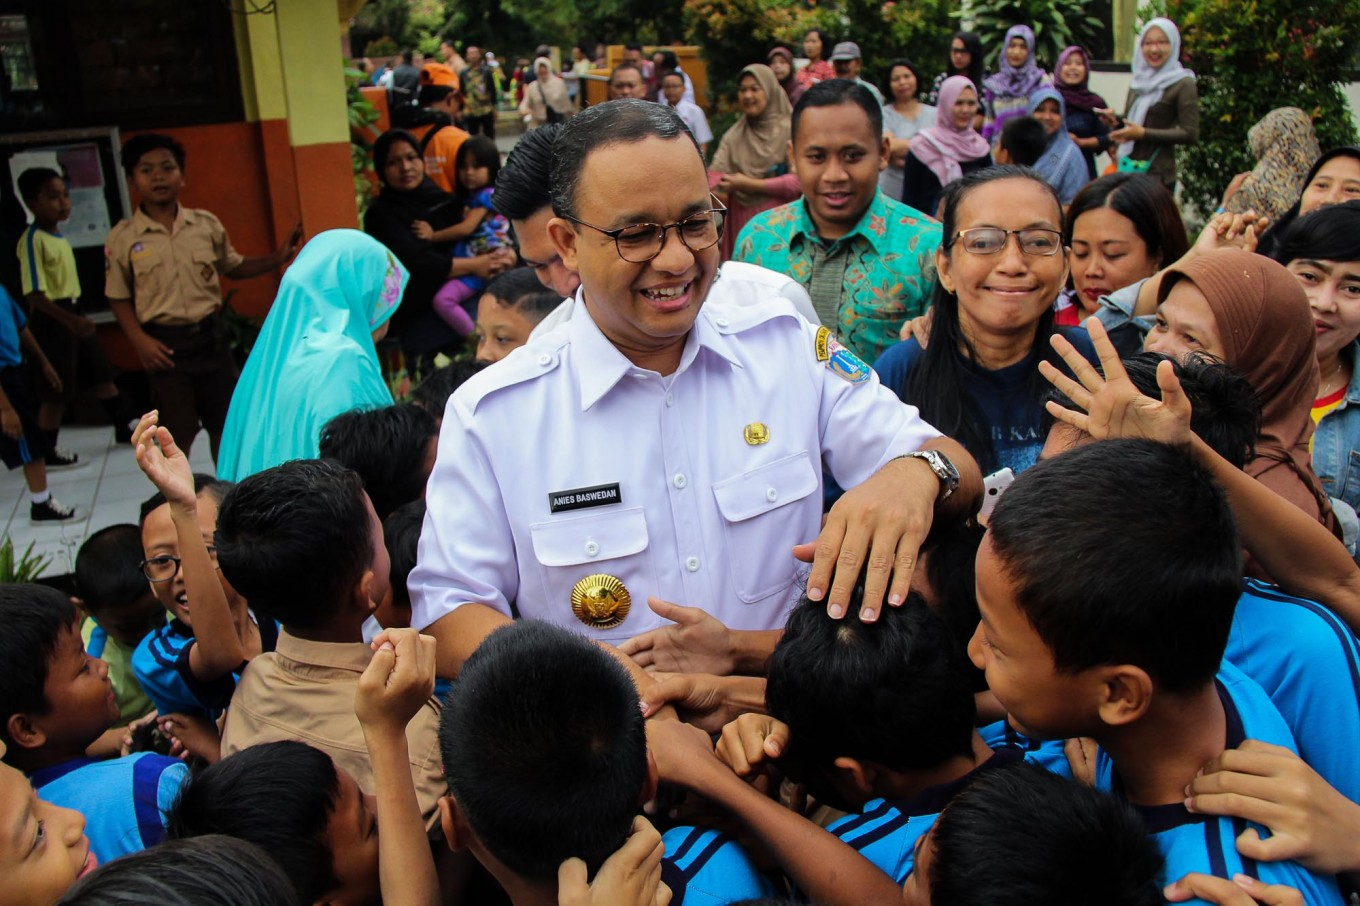 Anies must provide equal treatment for all